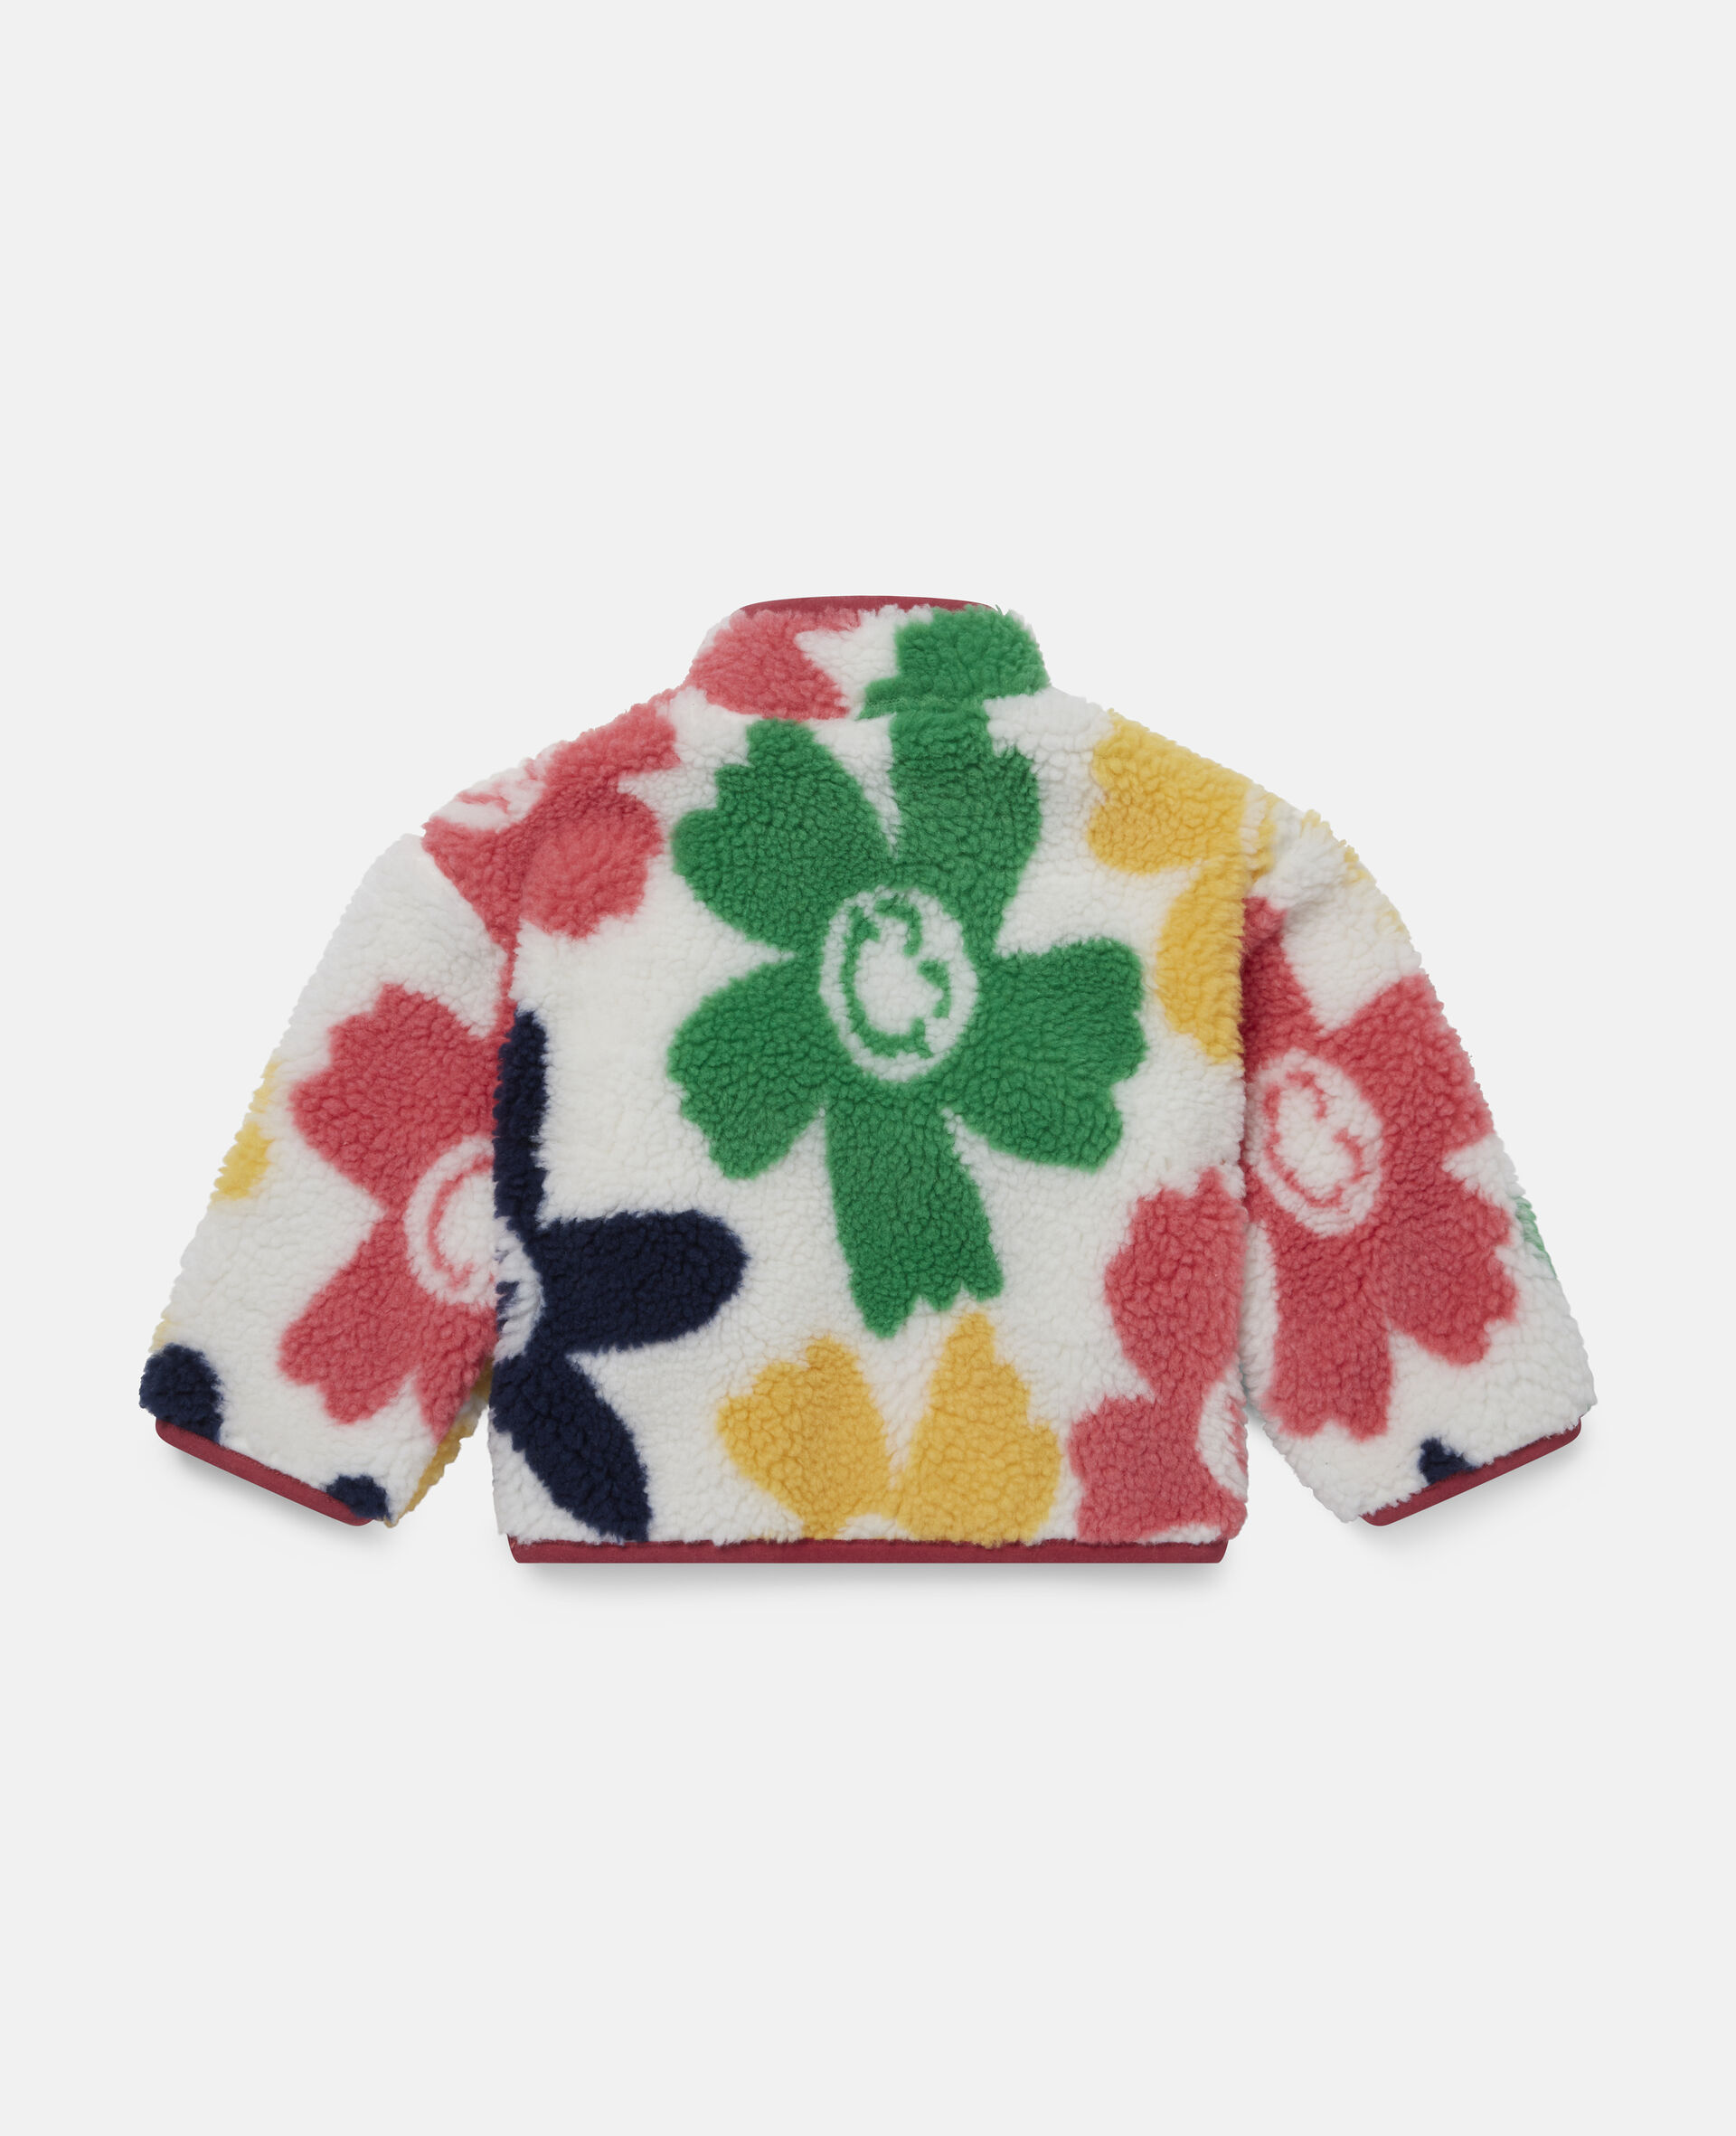 Smiley Flowers Teddy Jacket-Multicolour-large image number 3